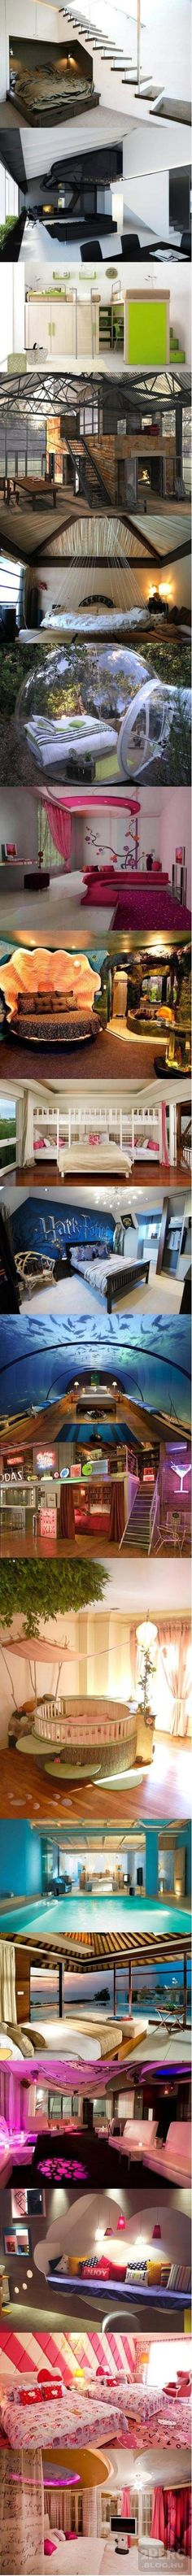 ummm harry potter room... whatt?! def making this happen for my kids hehe